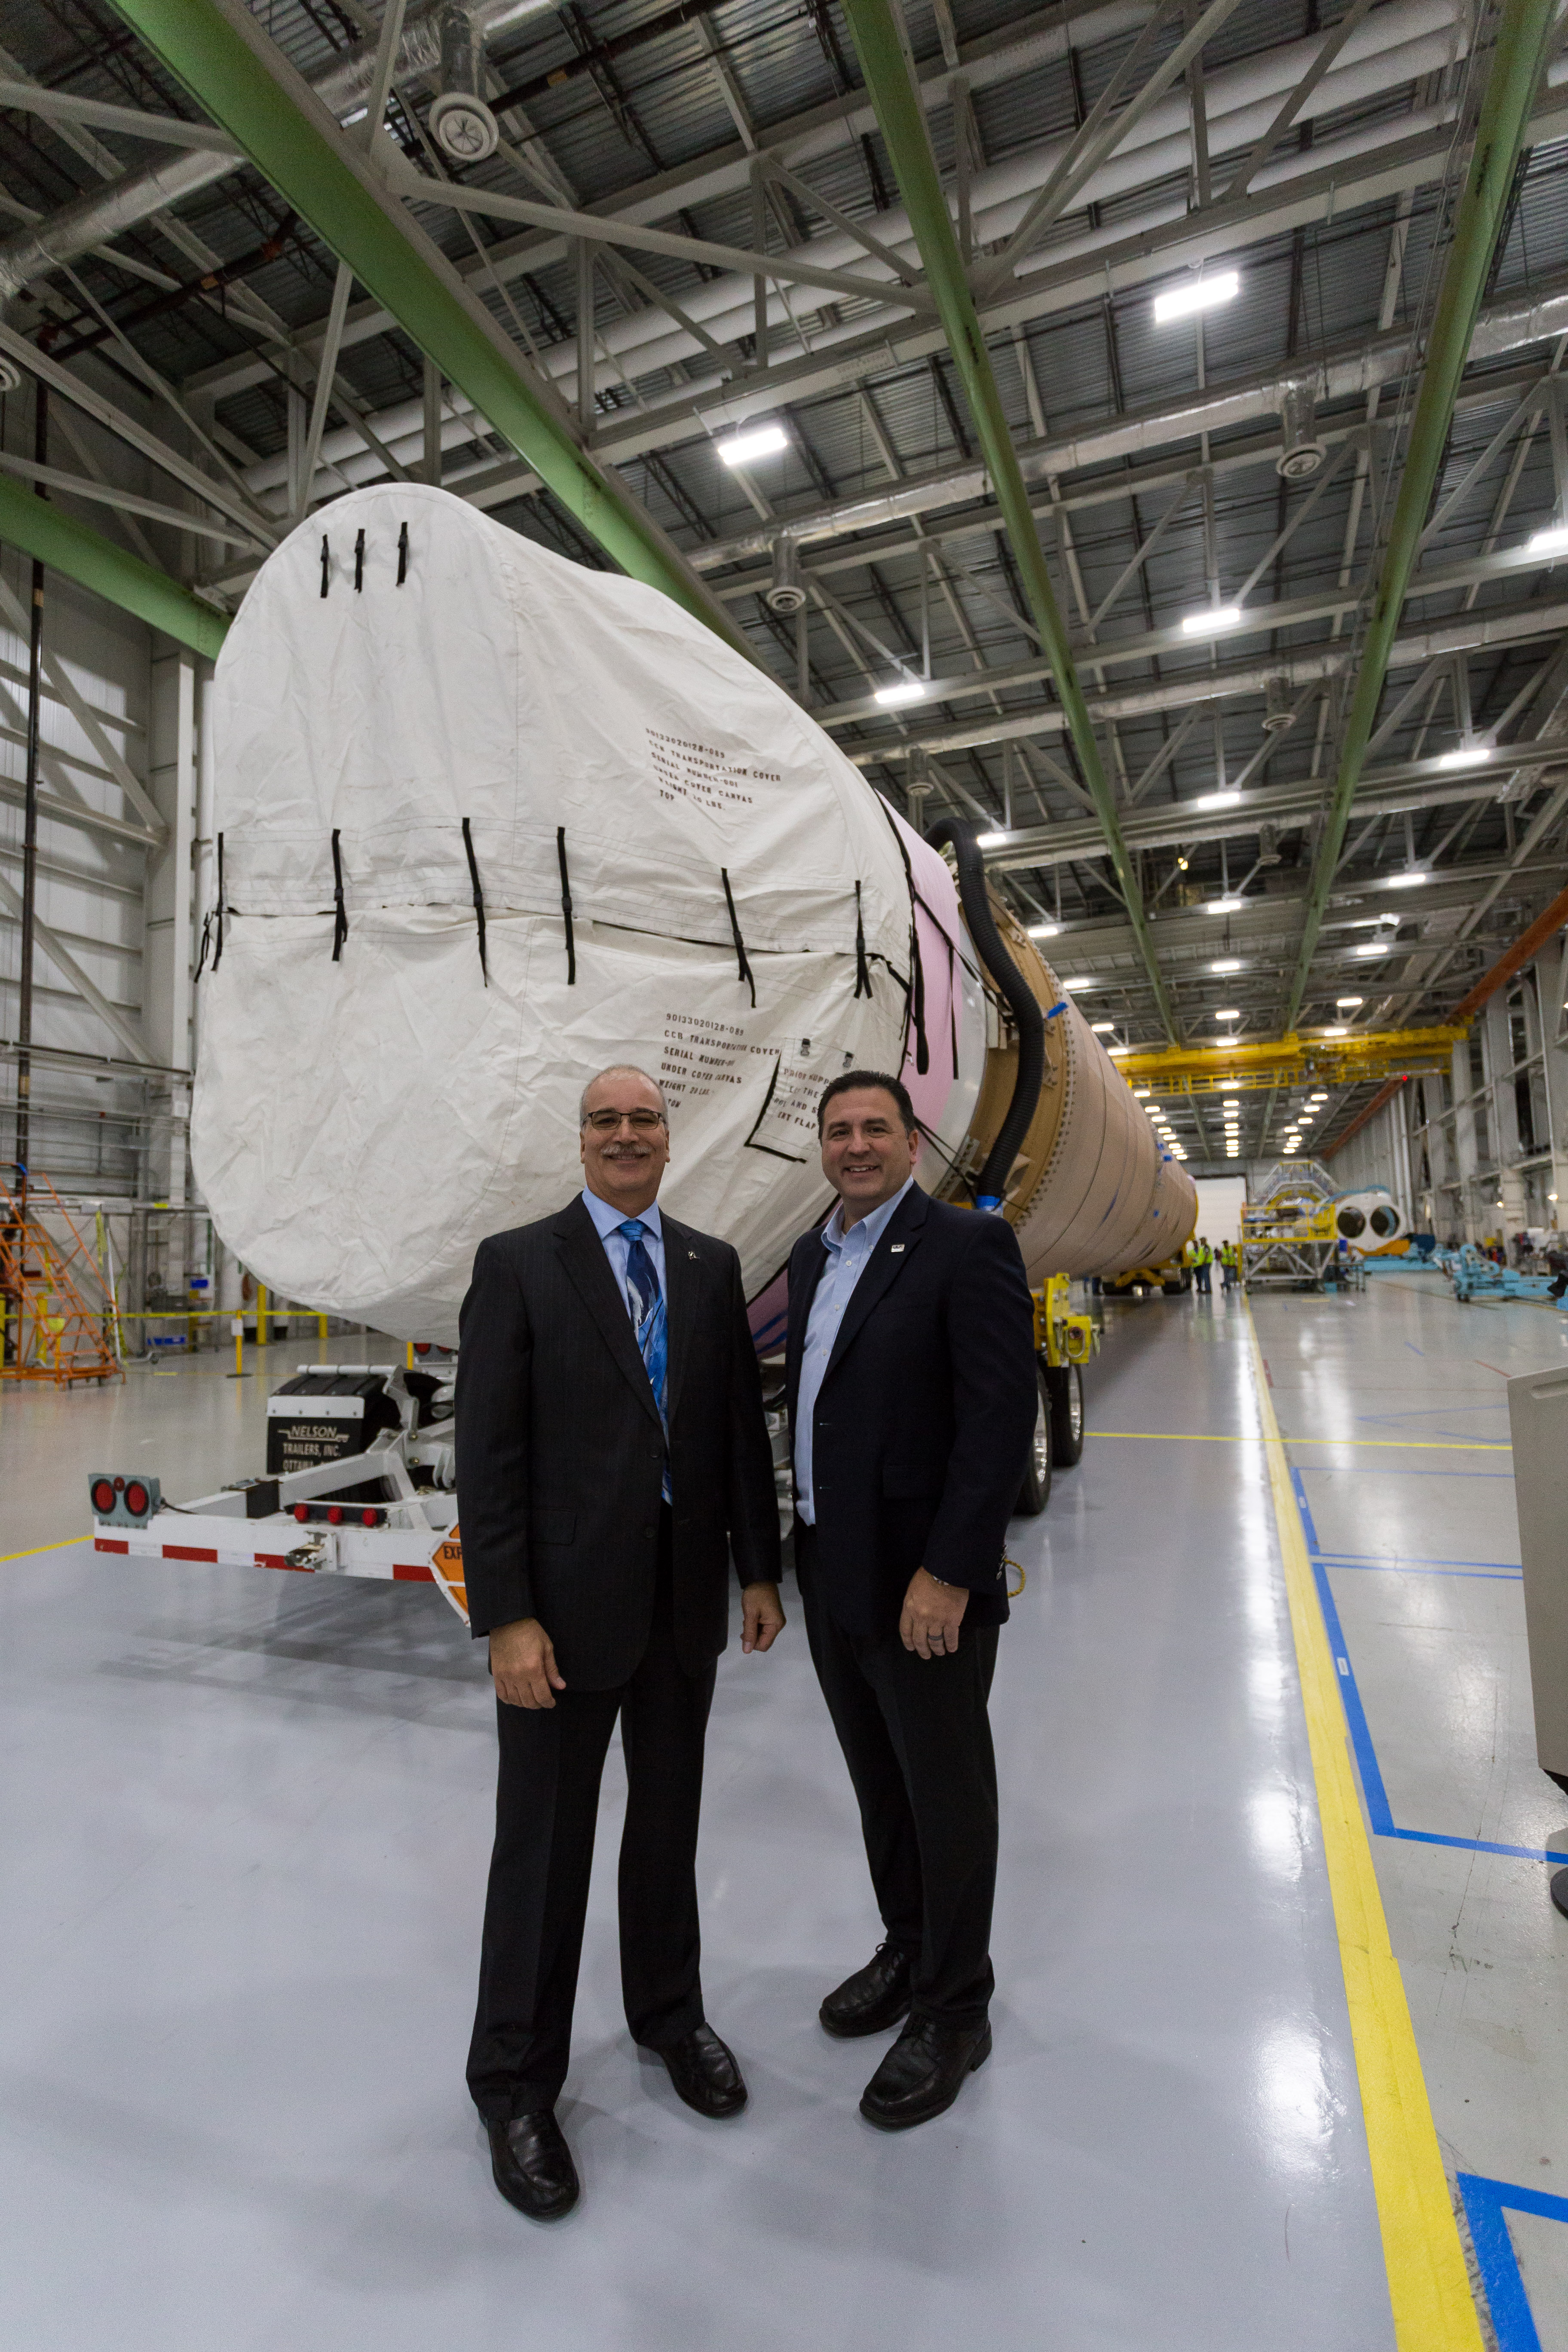 Boeing's Rick Navarro and ULA's Gary Wentz addressed dignitaries and the news media in front of the CFT booster in the factory before rollout. Photo by ULA